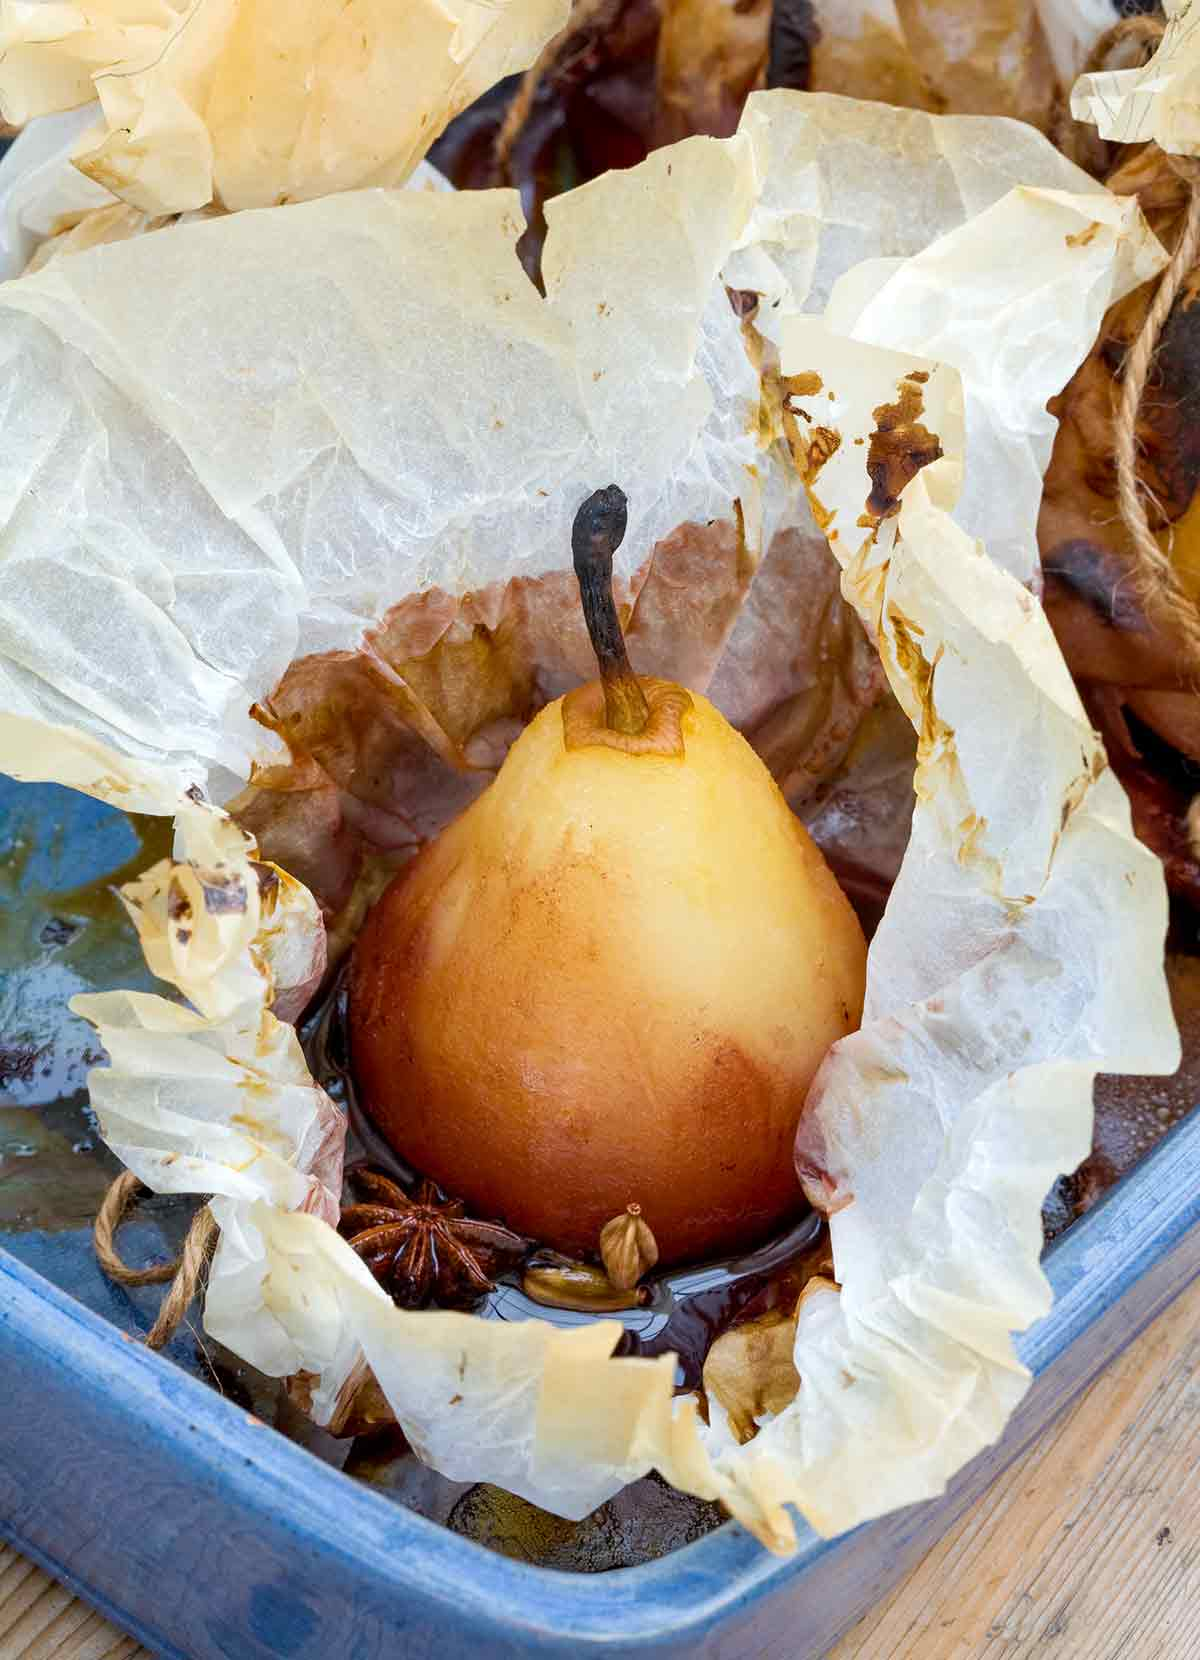 A whole peeled pear in an opened piece of parchment with star anise and cardamom in a blue baking dish.